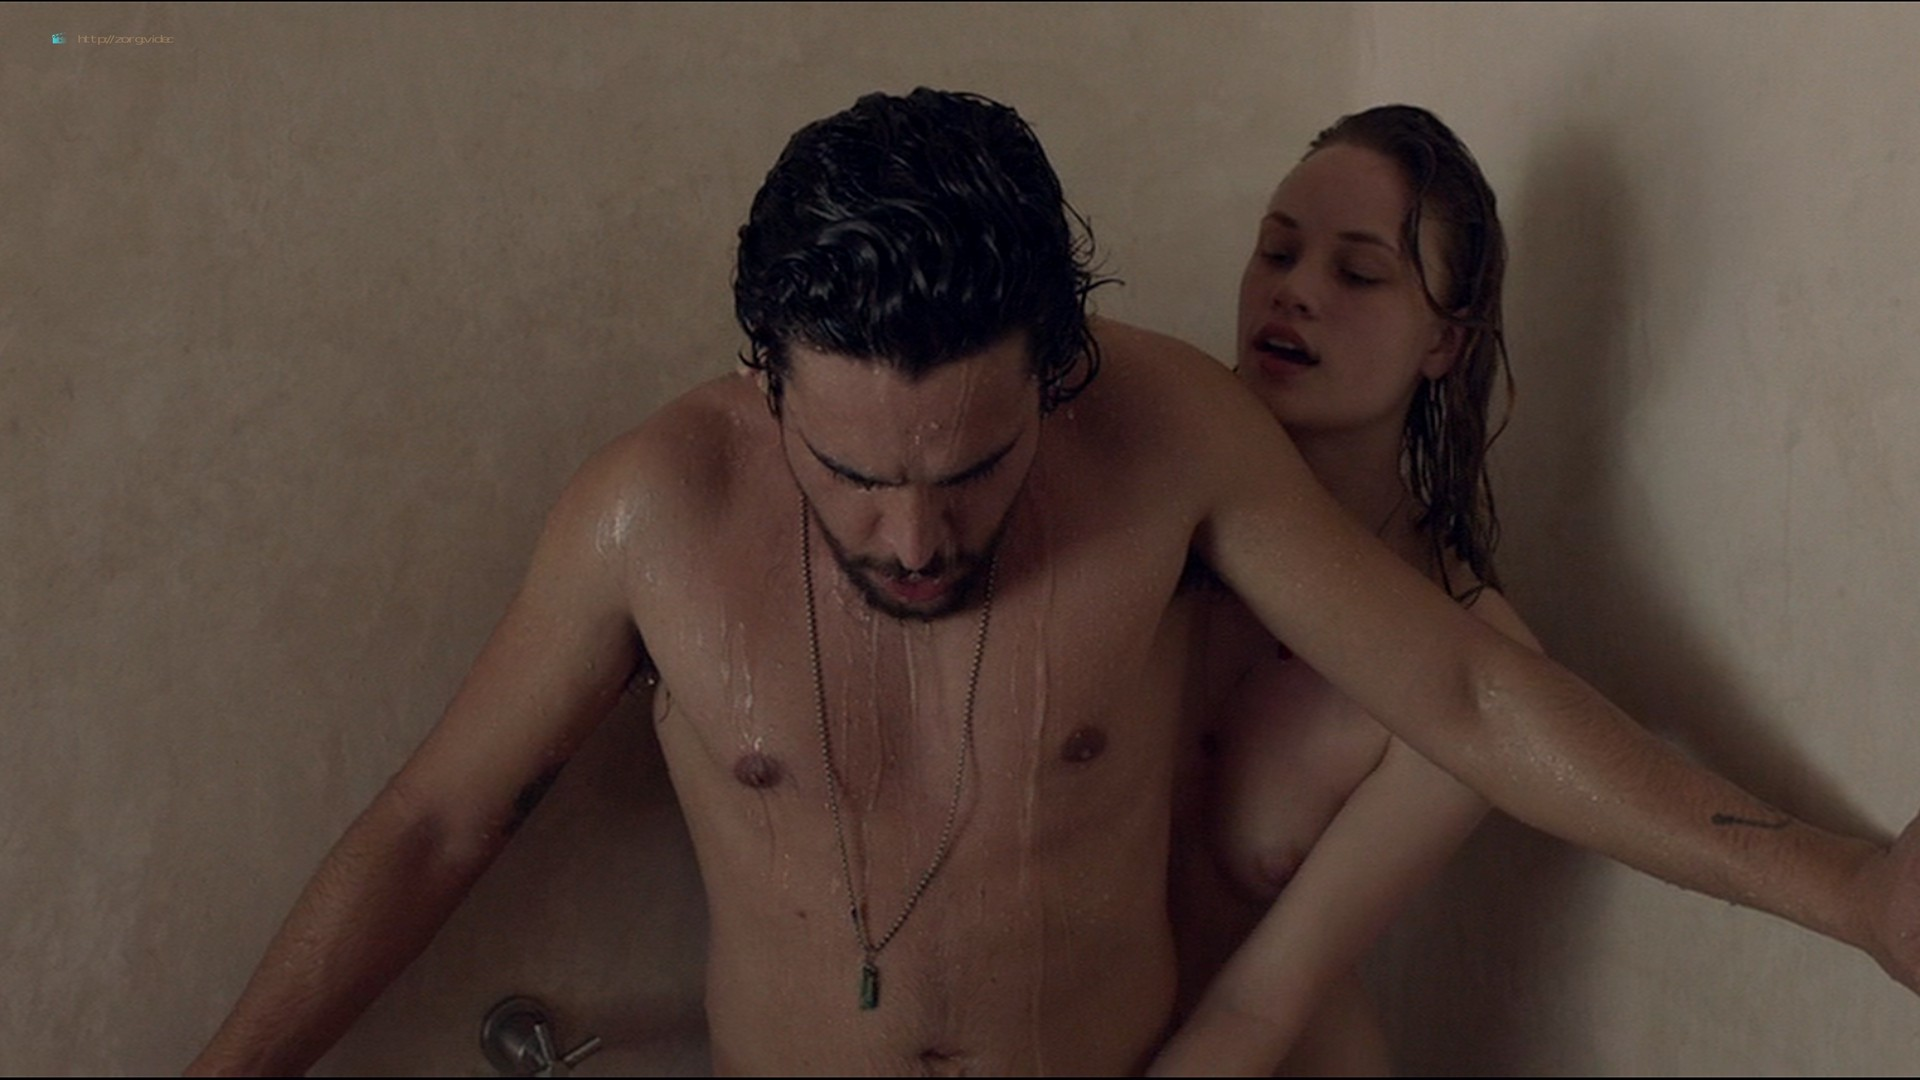 Makenzie Leigh nude giving handjob in the shower - James White (2015) HD 1080p Web (4)